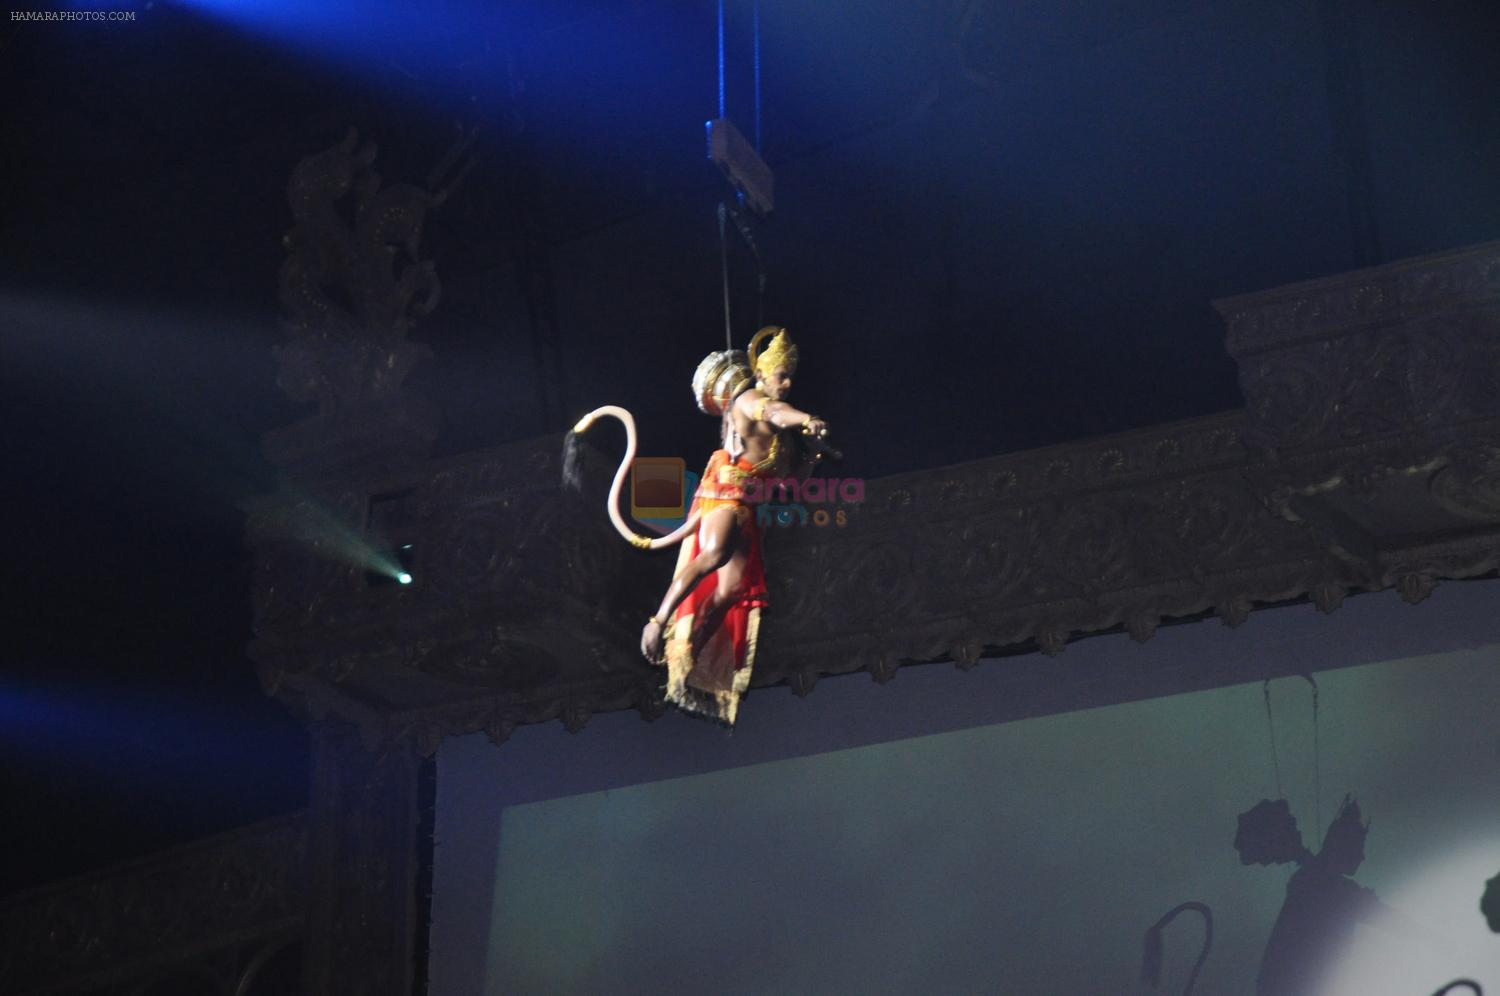 Nirbhay Wadwa at the launch of Sankat Mochan Mahabali Hanuman